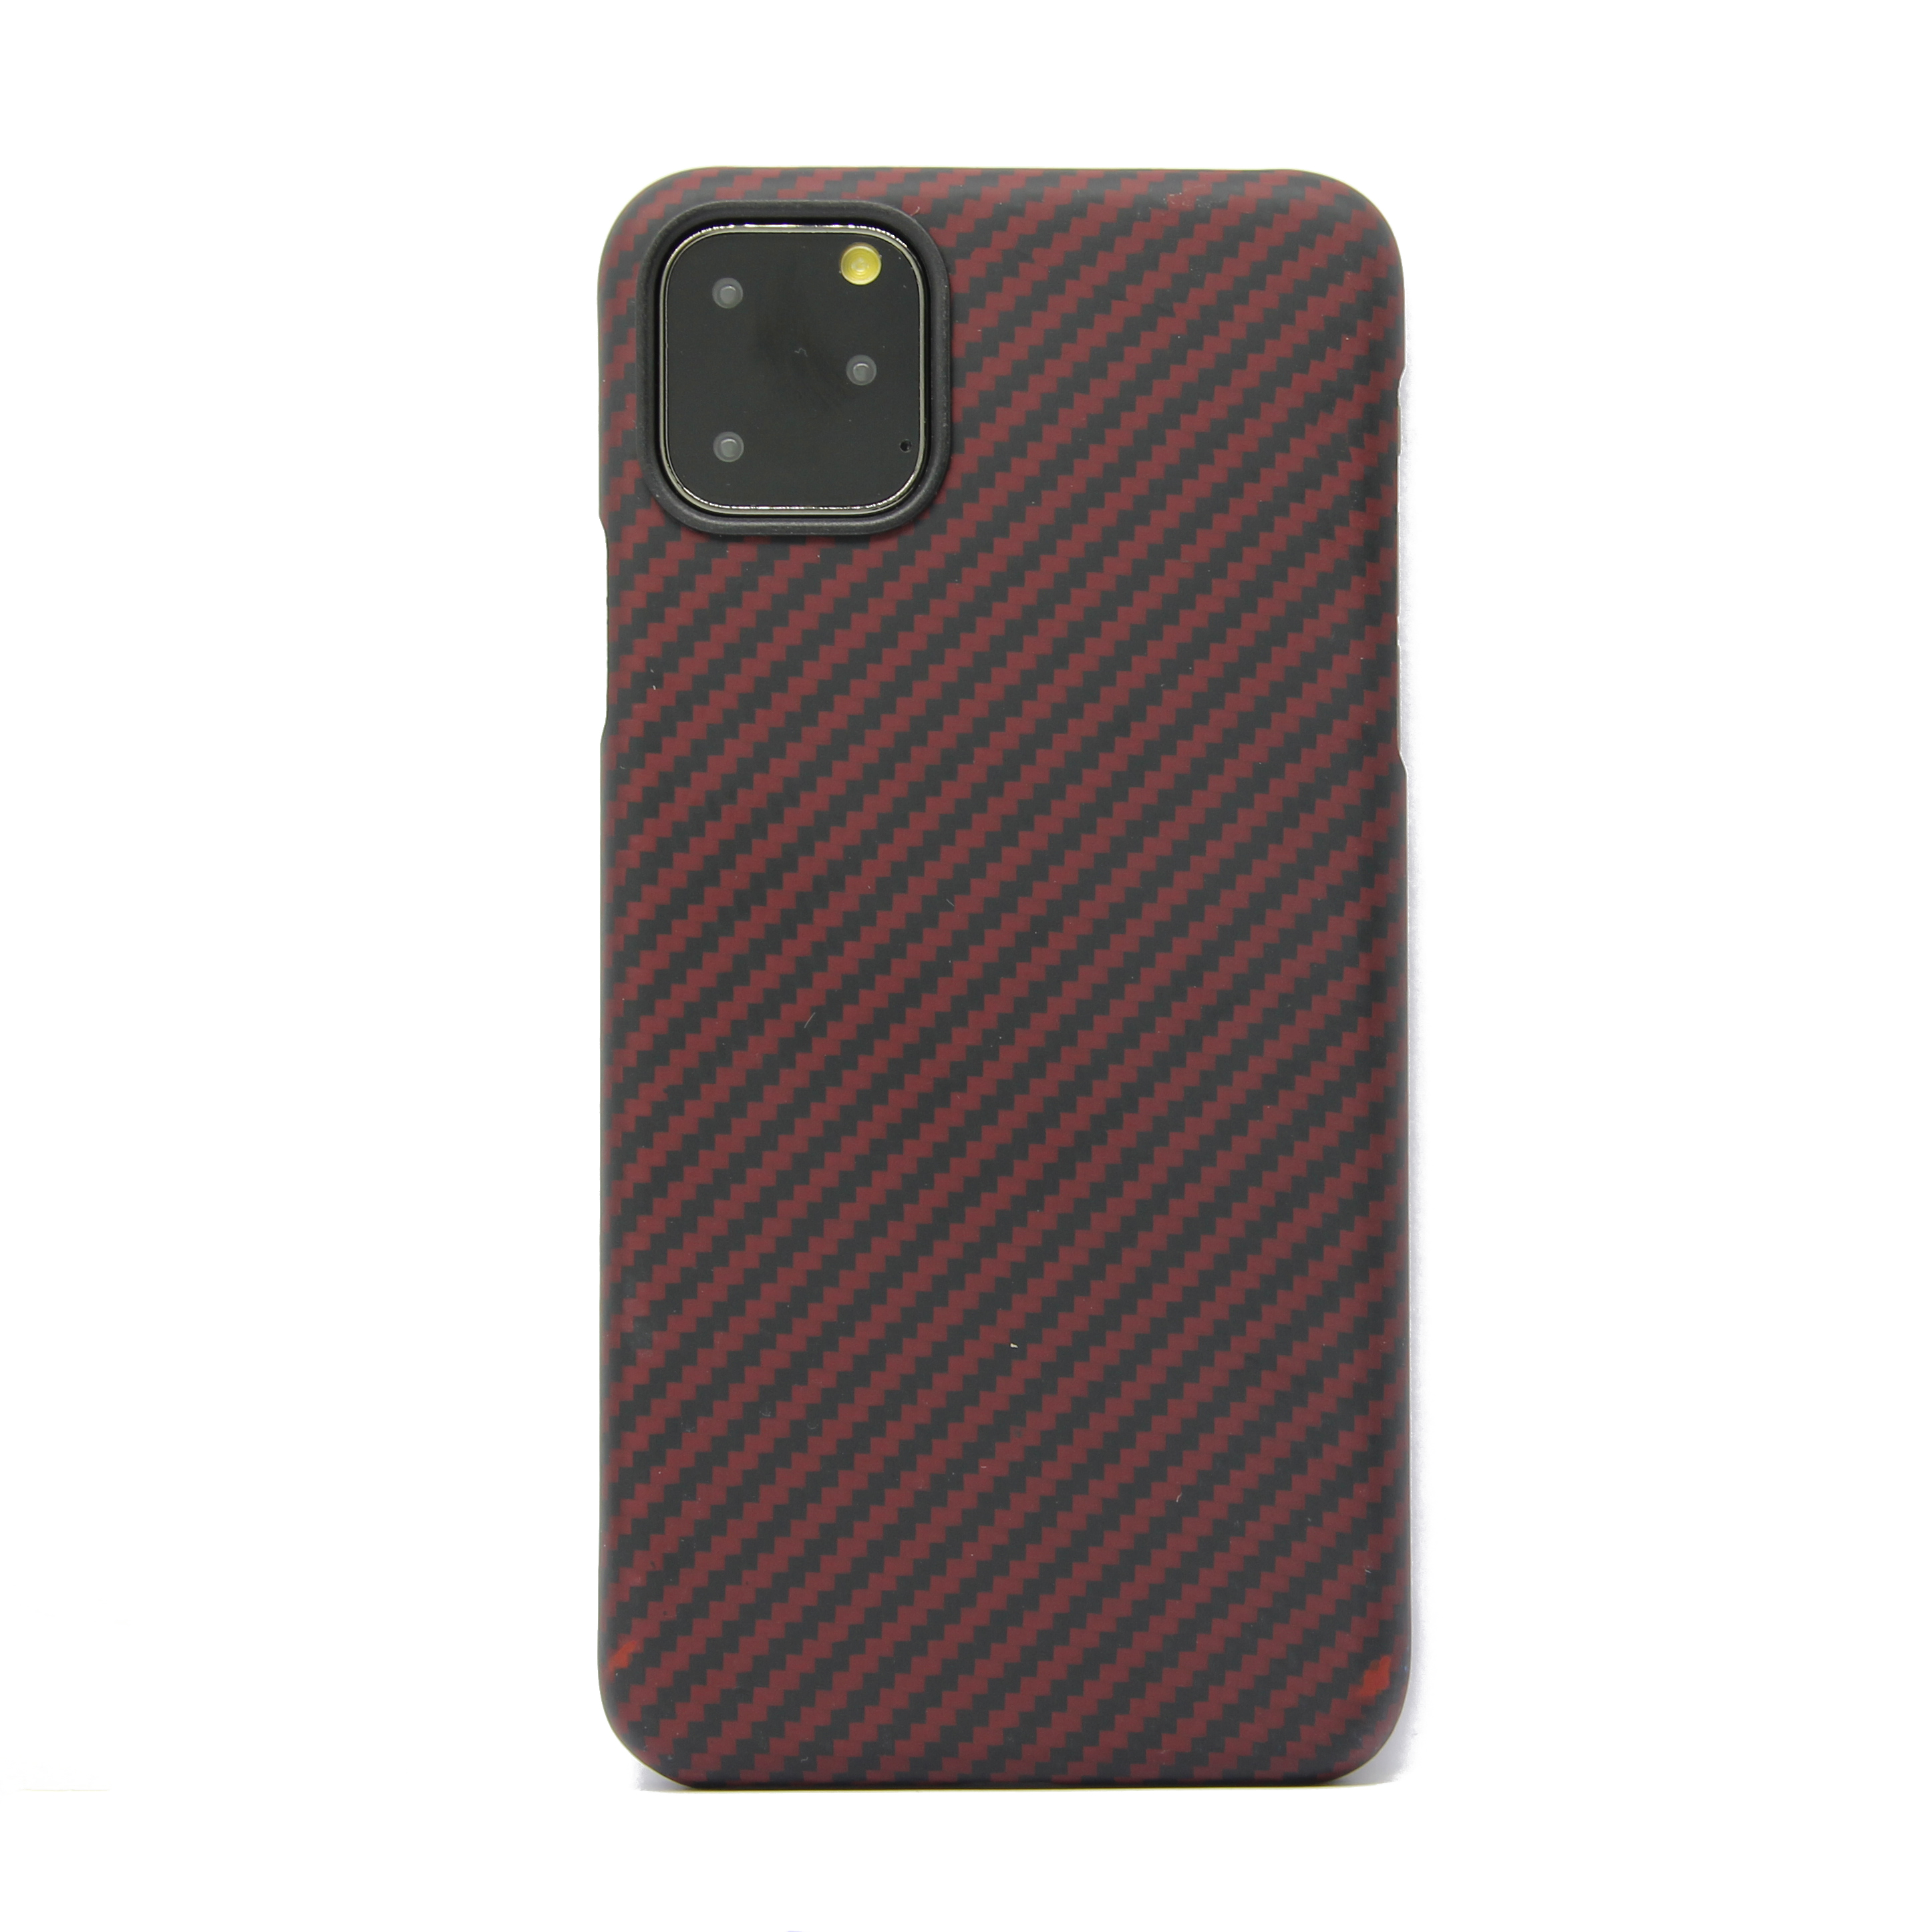 Shockproof Real Carbon Fiber Texture Mobile Cell phone case For Iphone <strong>11</strong> Pro Max